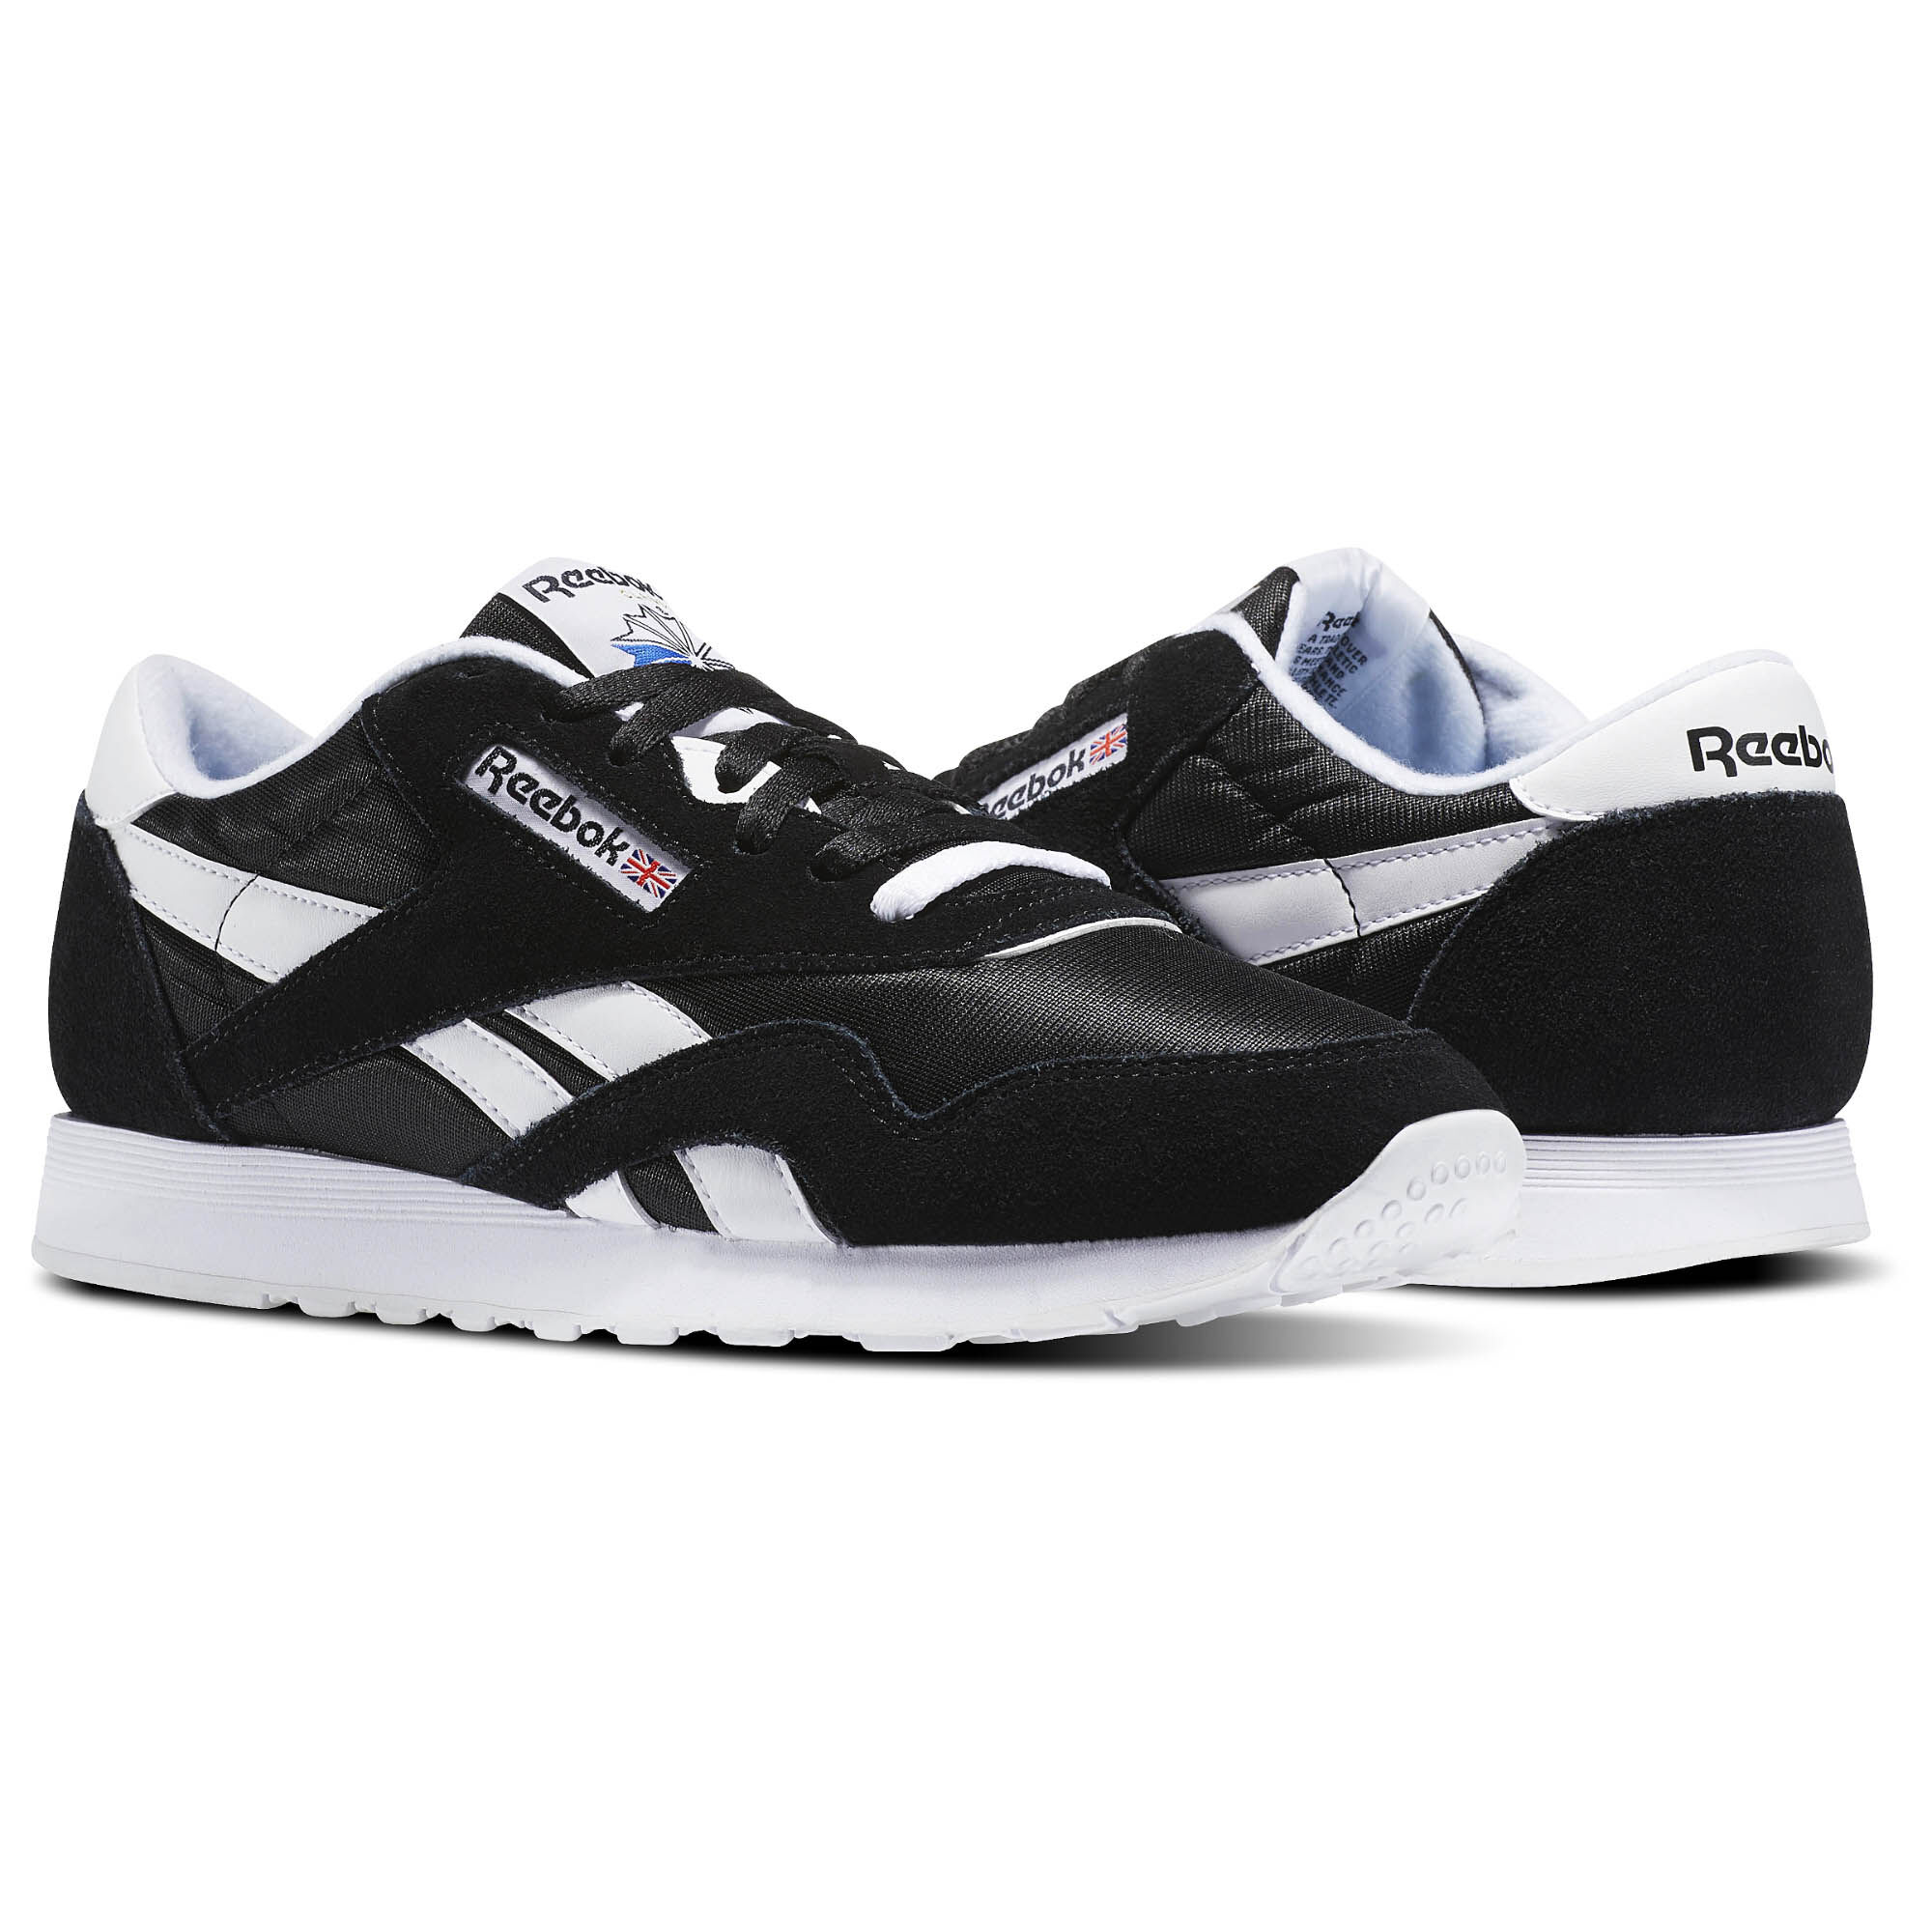 Síntomas especificar Escudriñar  old school reebok Online Shopping for Women, Men, Kids Fashion &  Lifestyle|Free Delivery & Returns! -